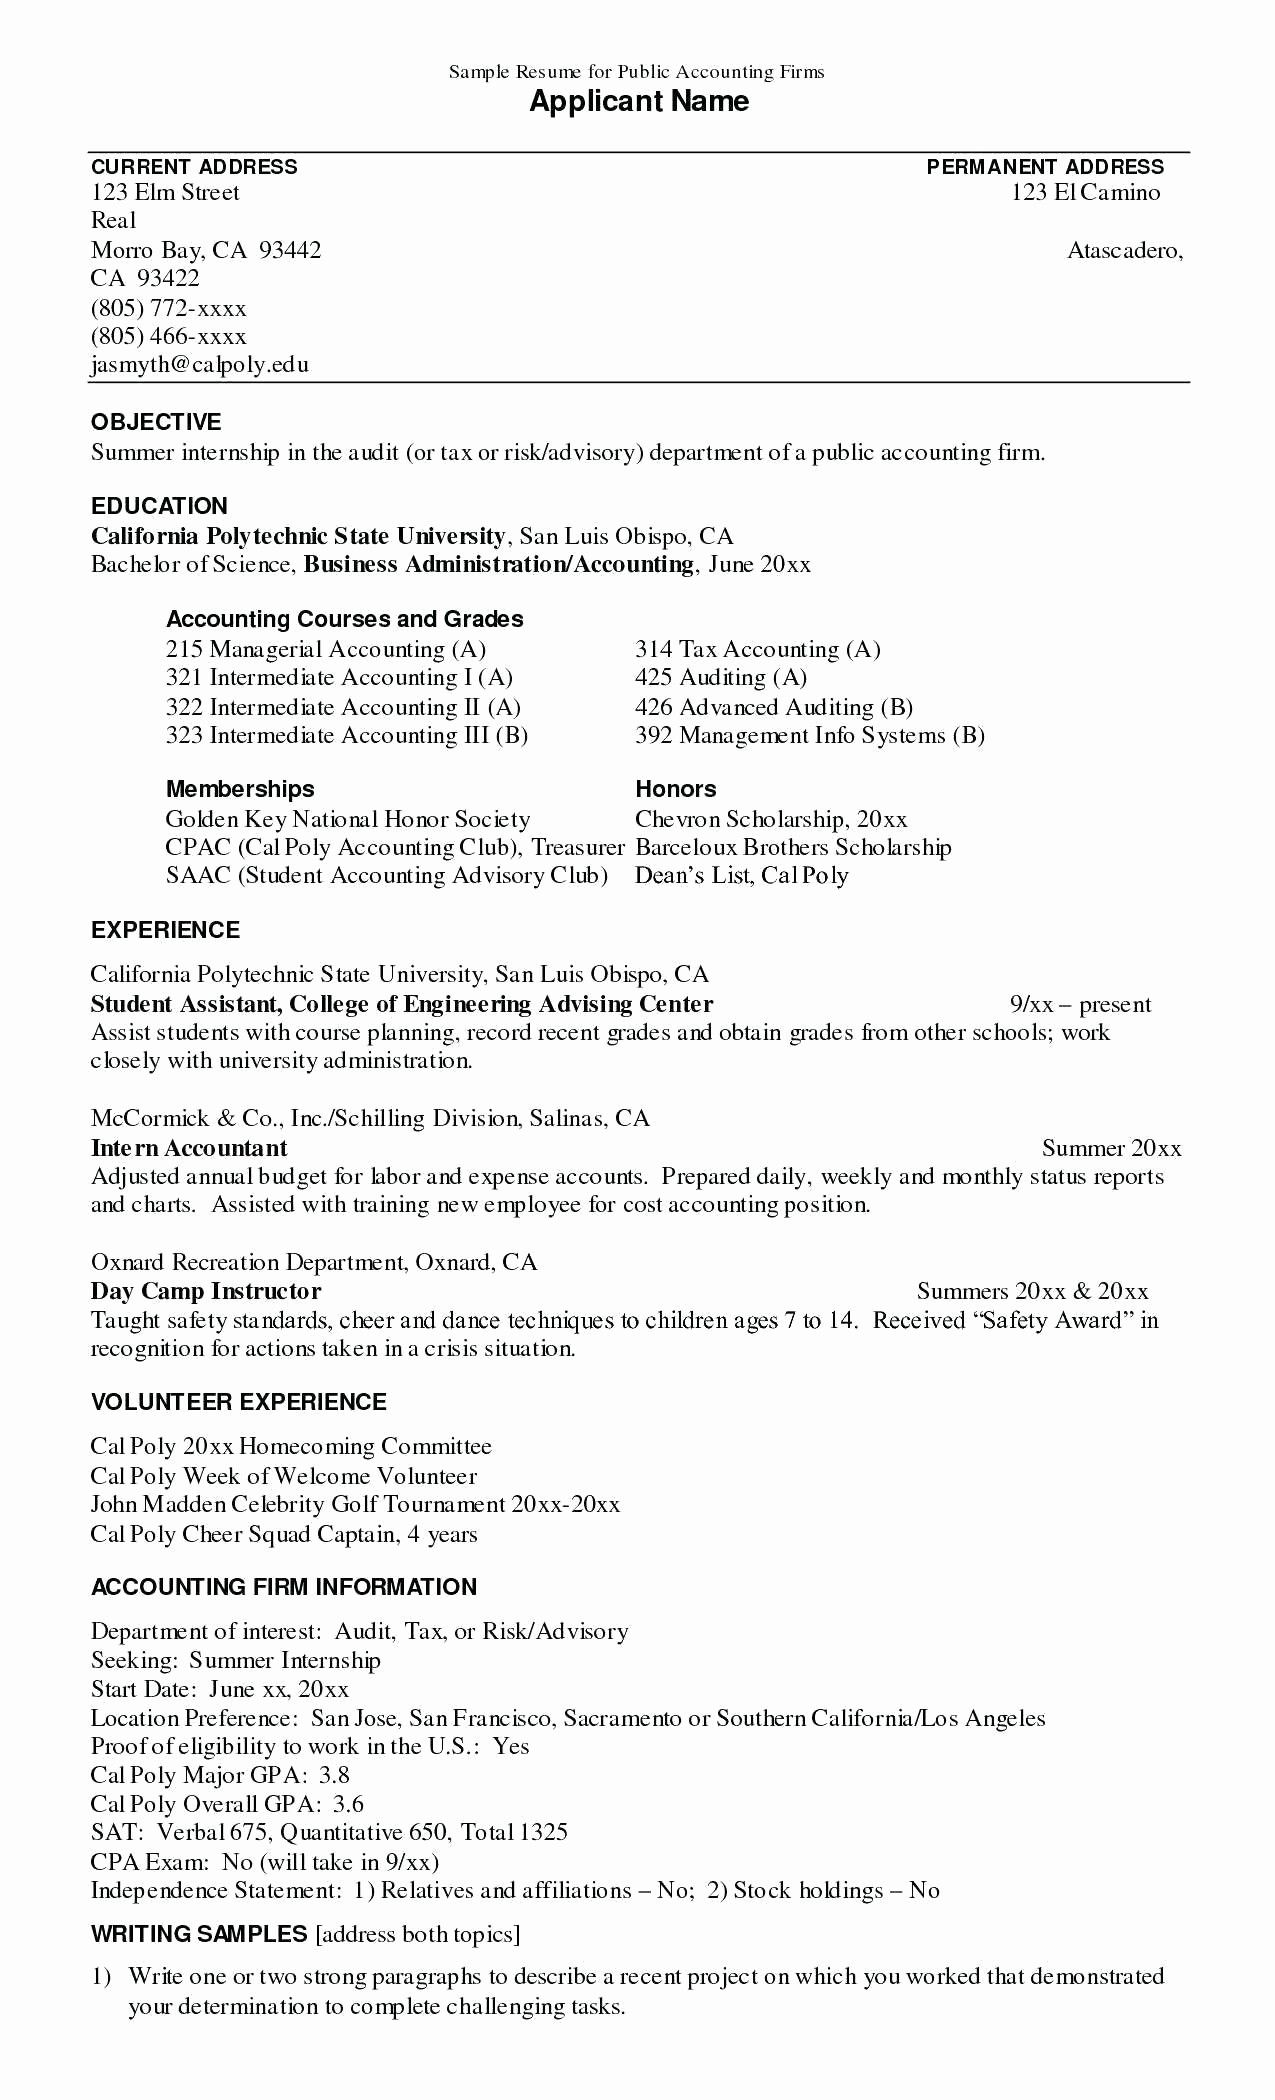 Resume Power Statement Best Of Examples Achievements For Resume Achievement In Internship Resume Sample Resume Resume Objective